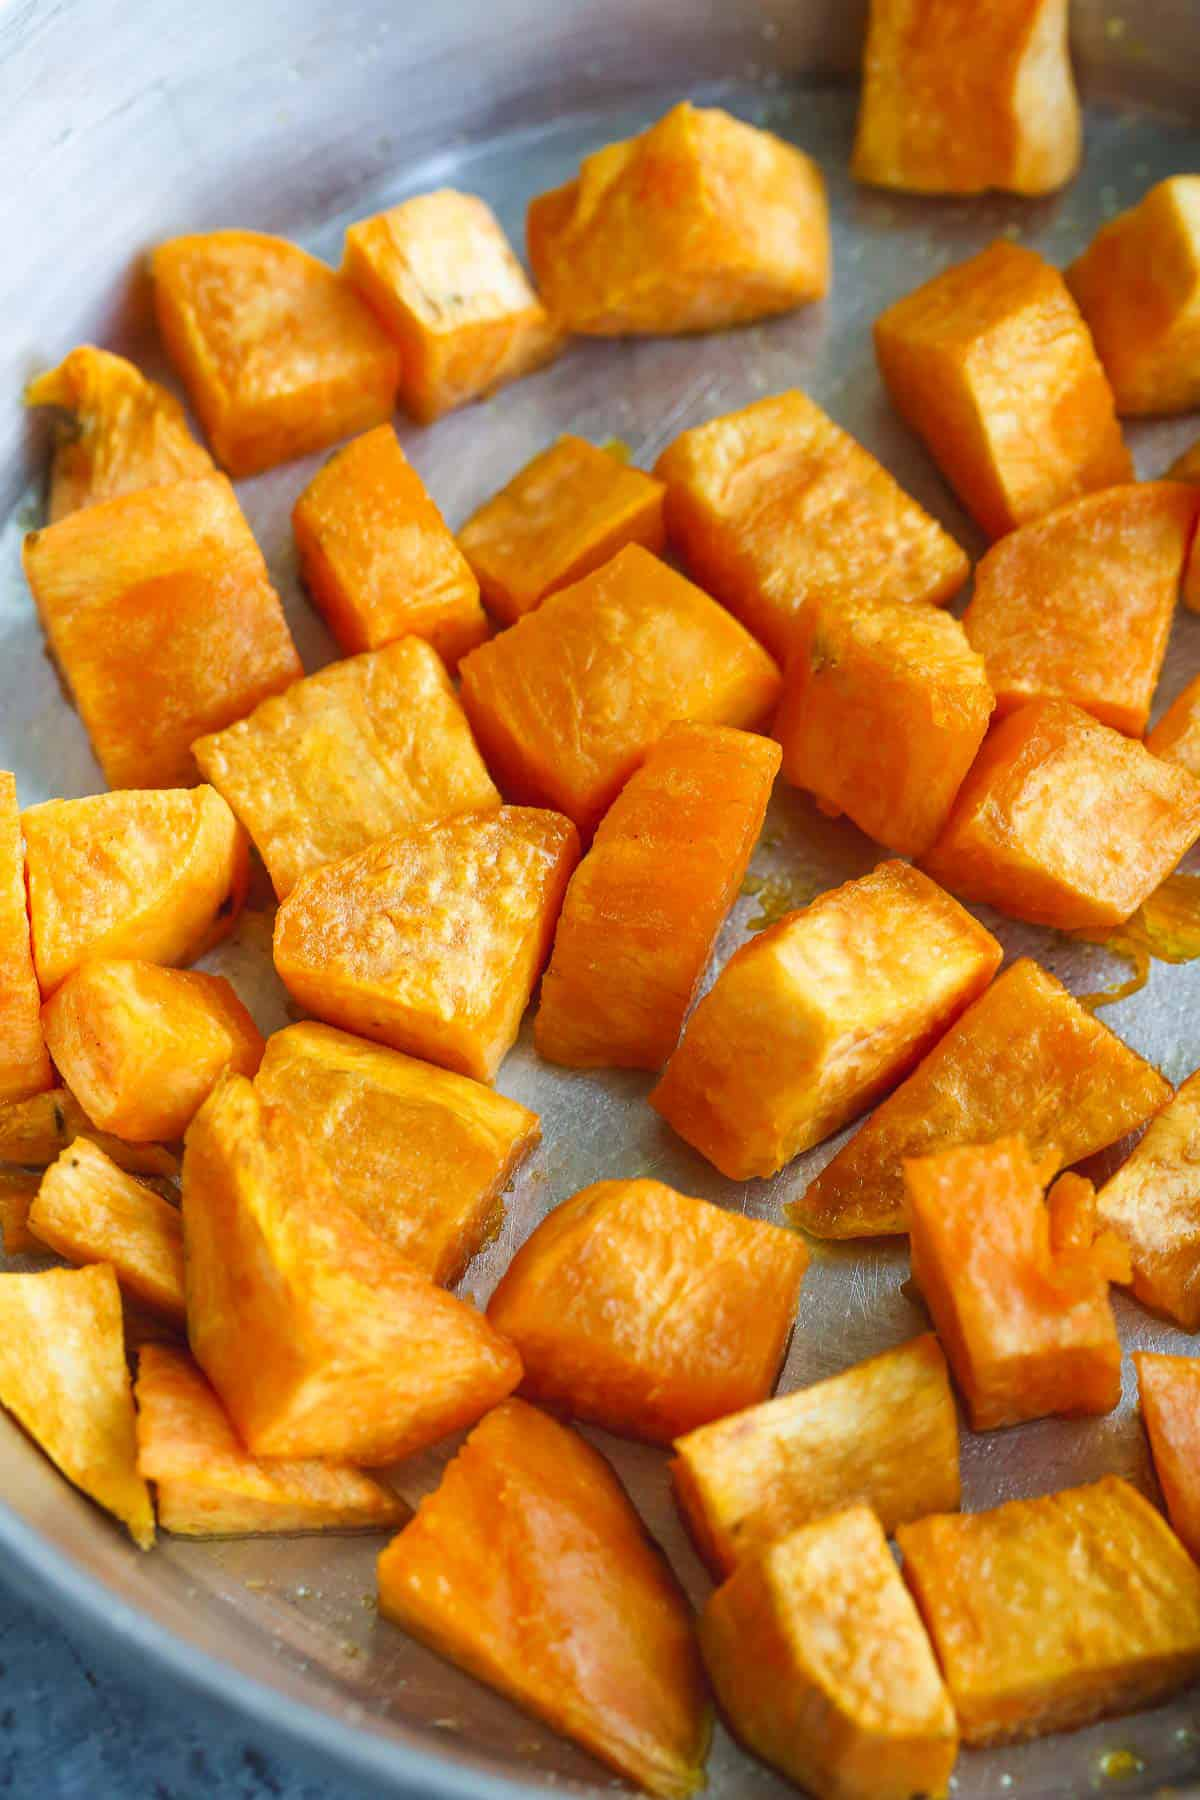 Cubed roasted sweet potato